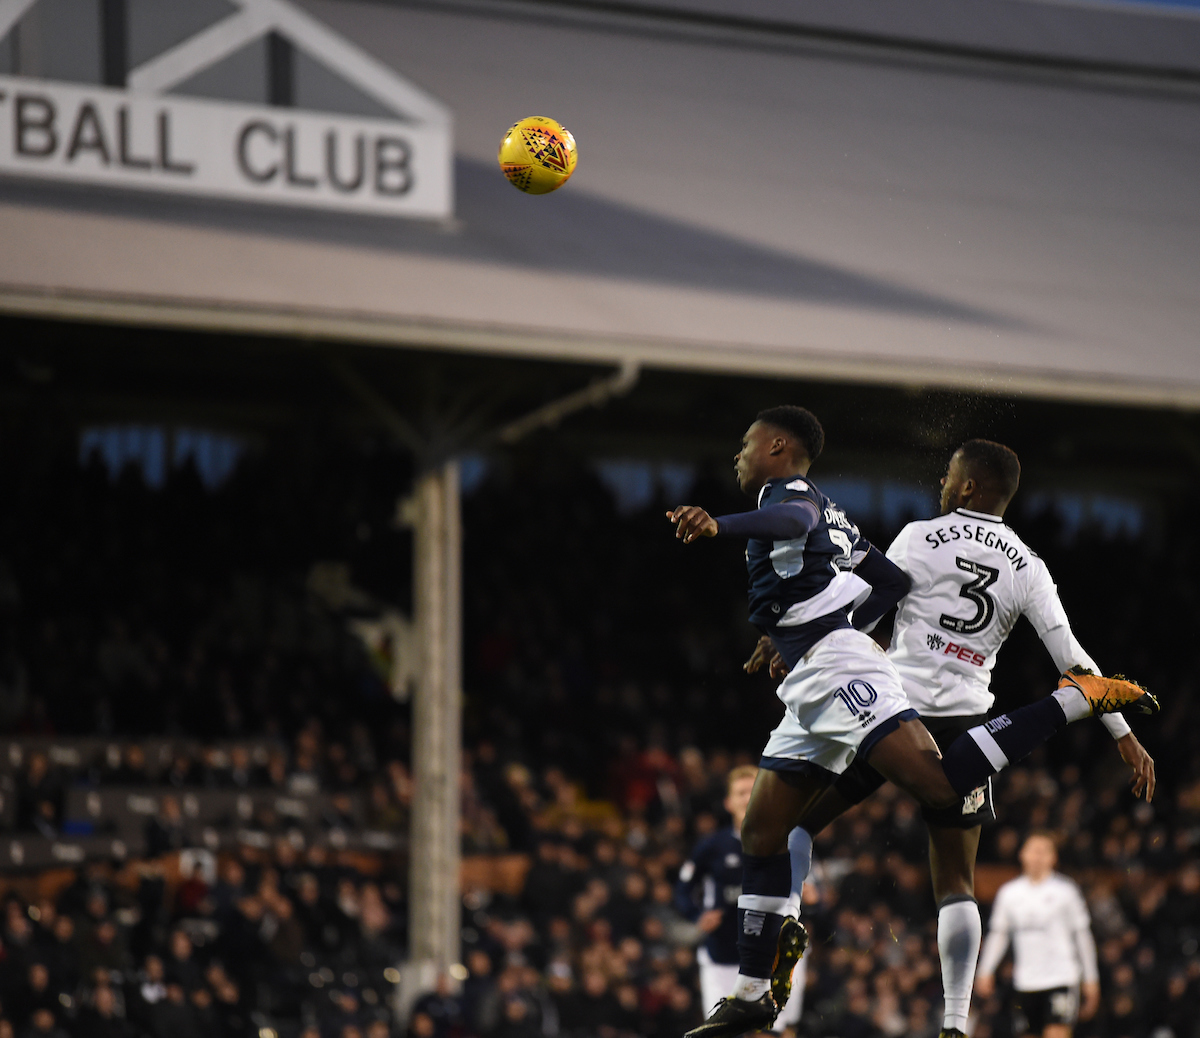 Ryan Sessegnon of Fulham and Fred Onyedinma of Millwall battle for the ball during the Sky Bet Championship match at Craven Cottage, London Picture by Simon Dael/Focus Images Ltd 07866 555979 25/11/2017